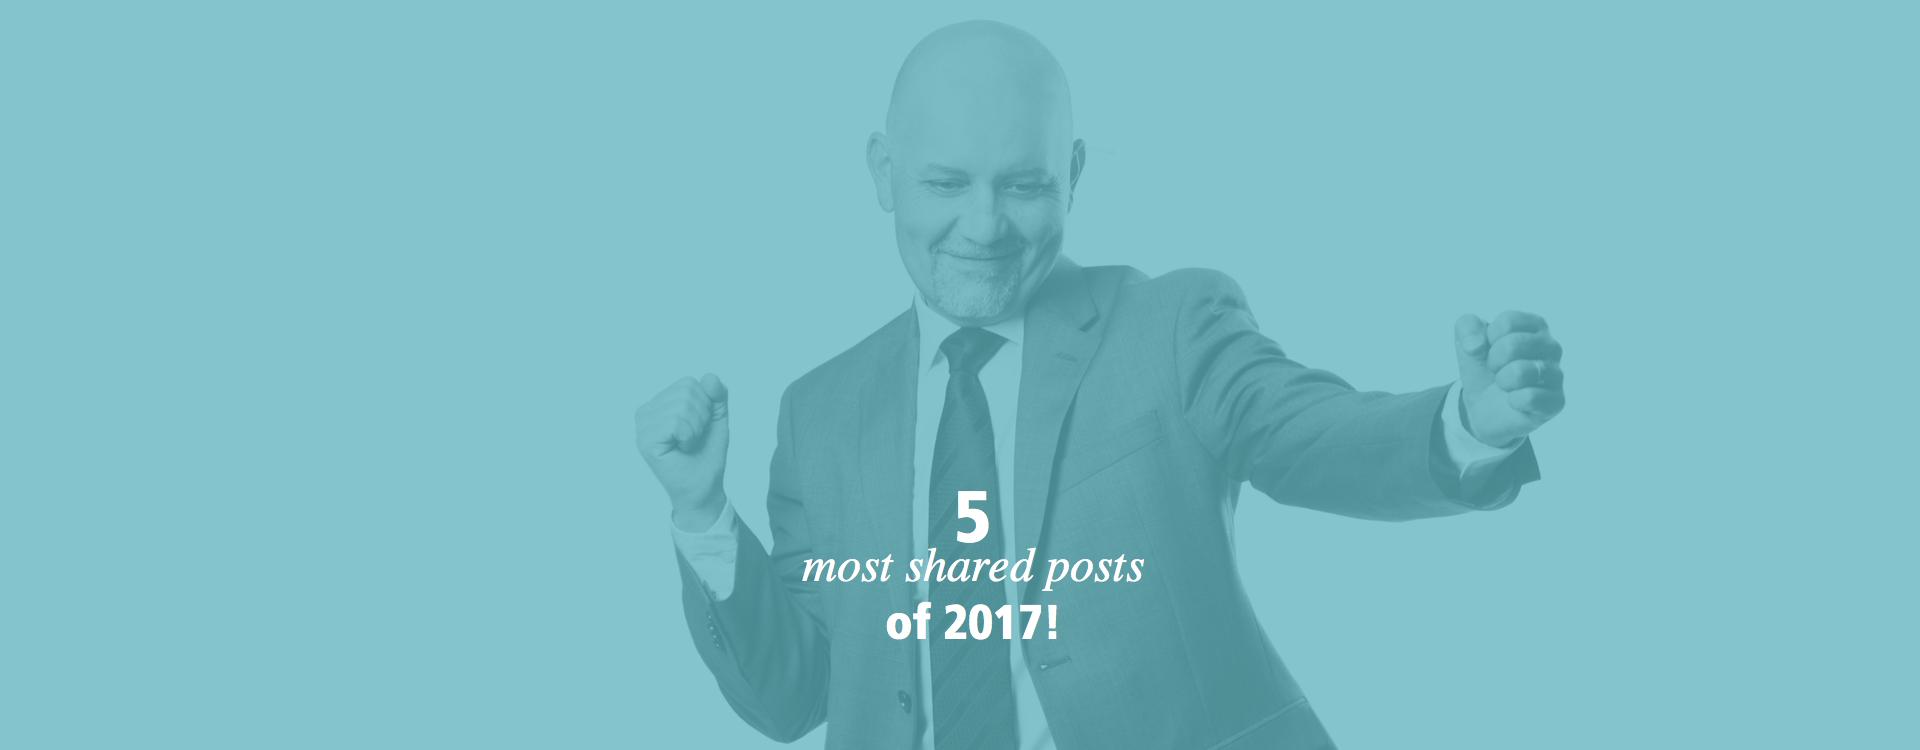 5 most shared posts of 2017